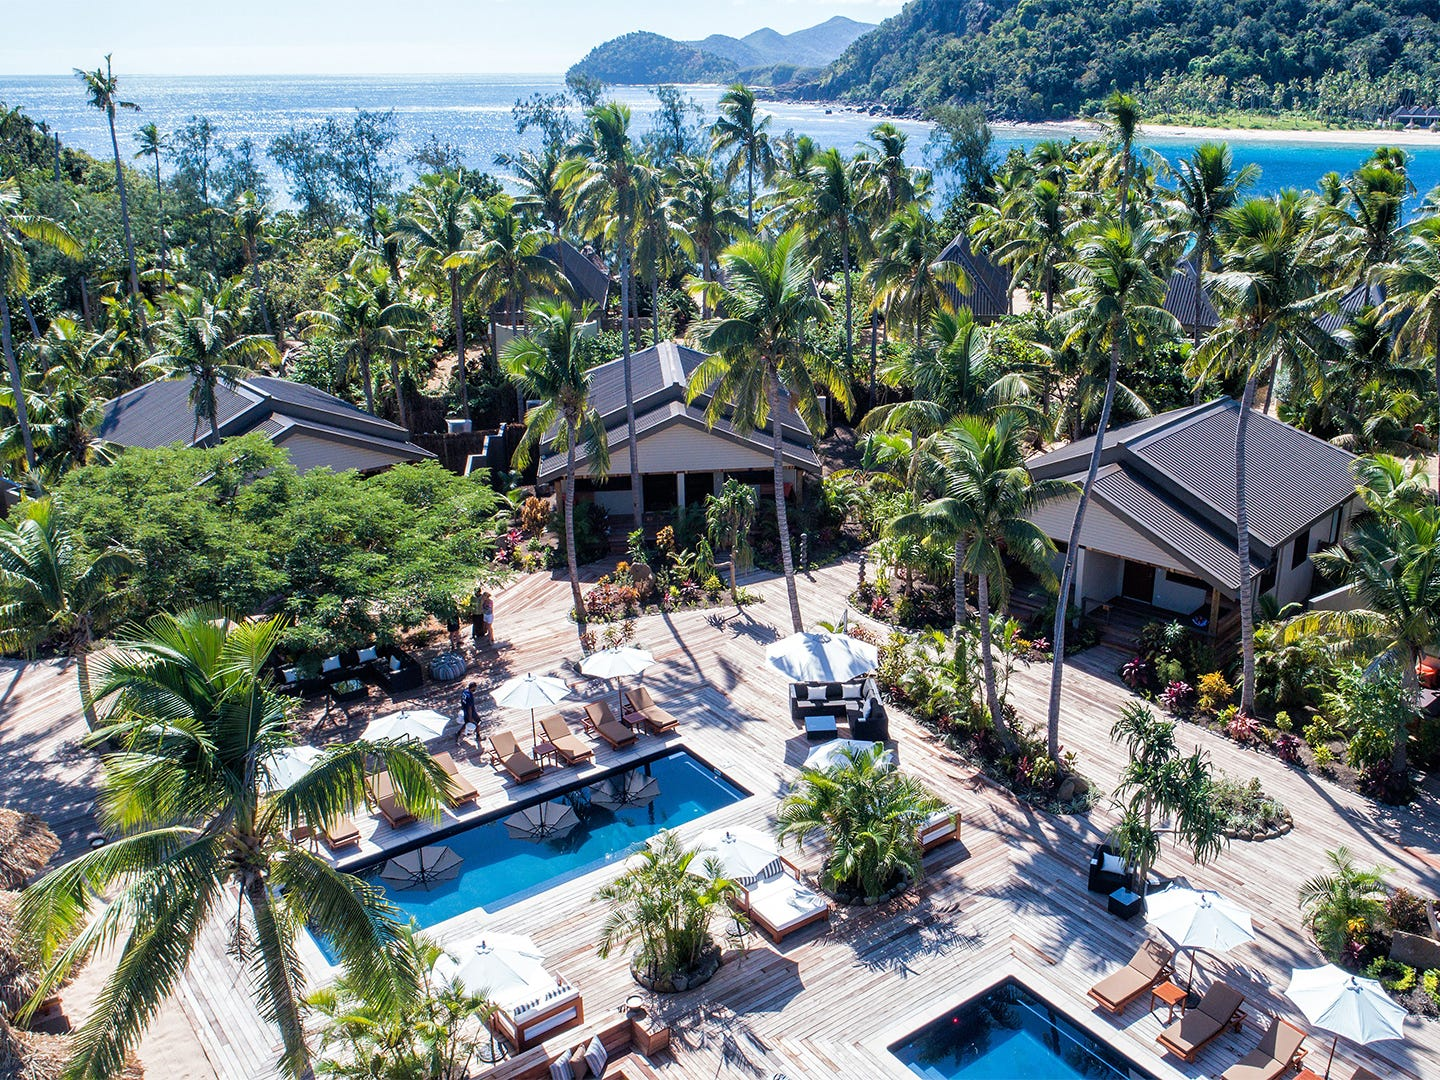 Paradise Cove Resort, from $254 per night. A 2018 TripAdvisor Travelers' Choice Winner, this five-star property in Fiji is a beach hotel like no other. All the rooms are villas, bungalows or suites, so you'll get the full feeling of a tropical paradise. There is a PADI dive shop on-site to arrange water explorations, and the hotel also can arrange swimming with giant manta rays, yoga on the beach and guided hikes. This great family locale has an adults-only portion of the resort called the Cove and a free kids club for the little ones.